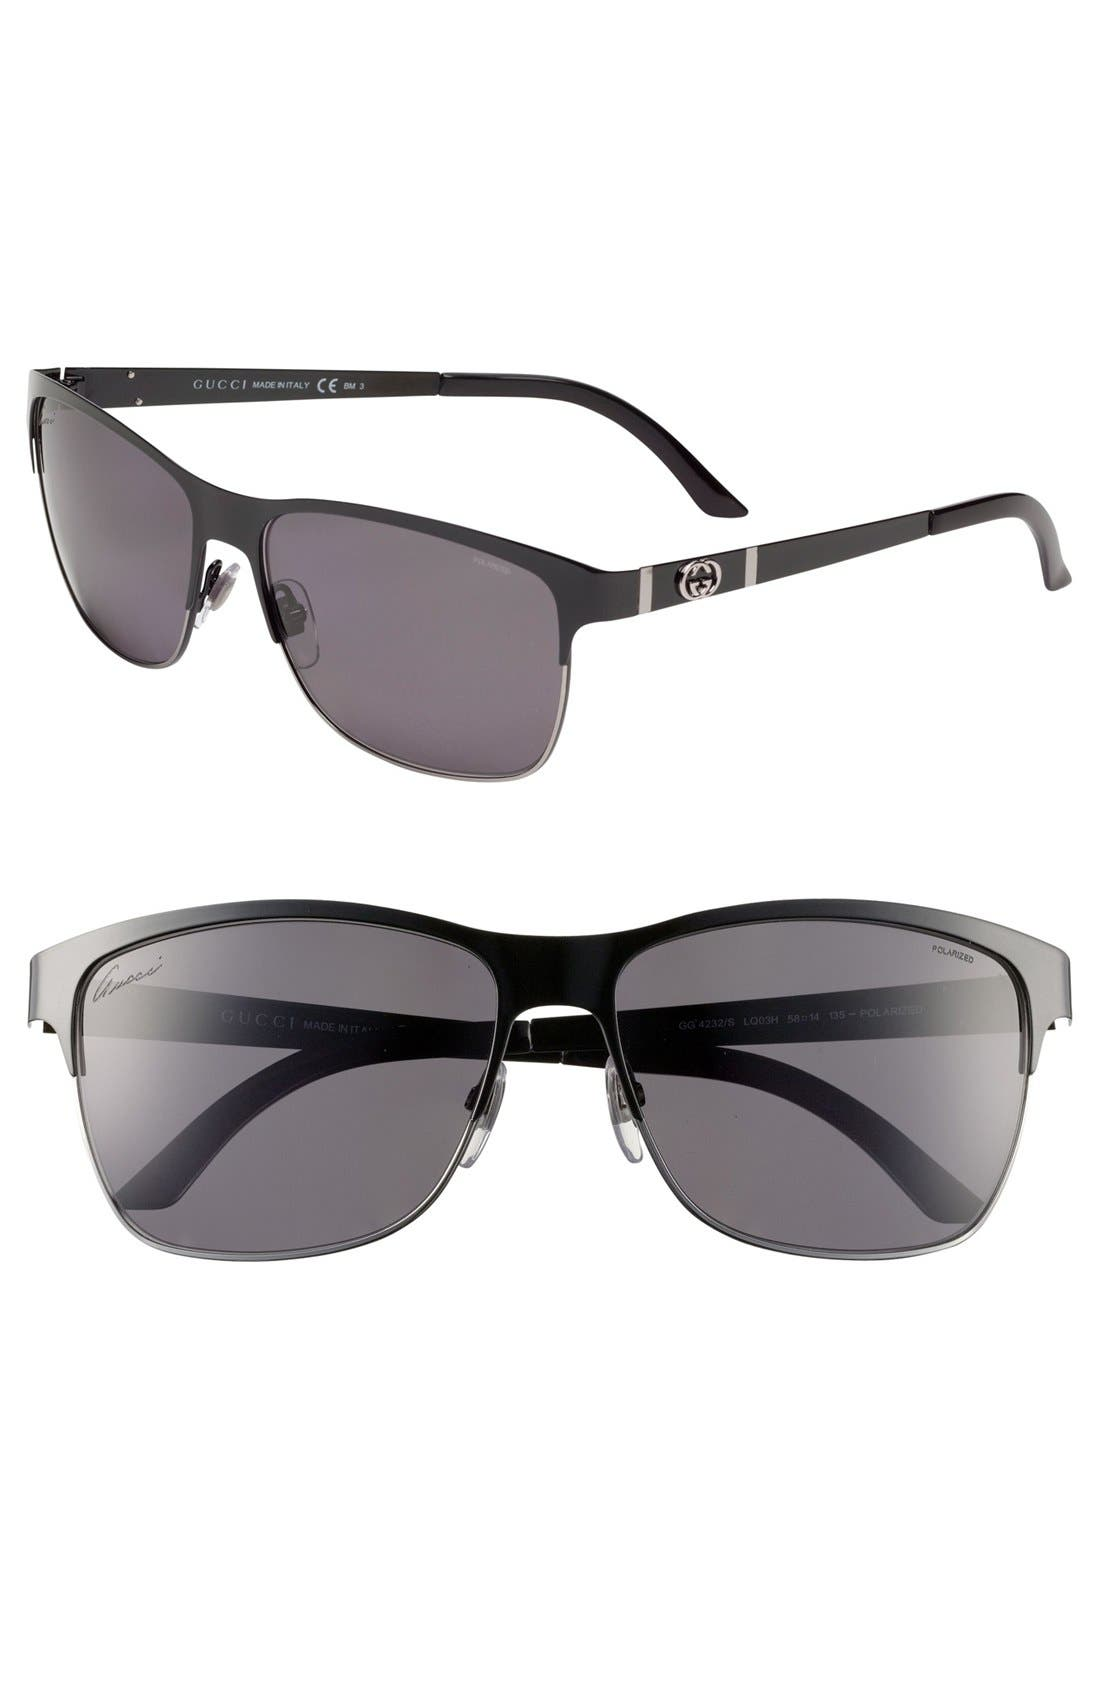 Alternate Image 1 Selected - Gucci 58mm Polarized Stainless Steel Sunglasses